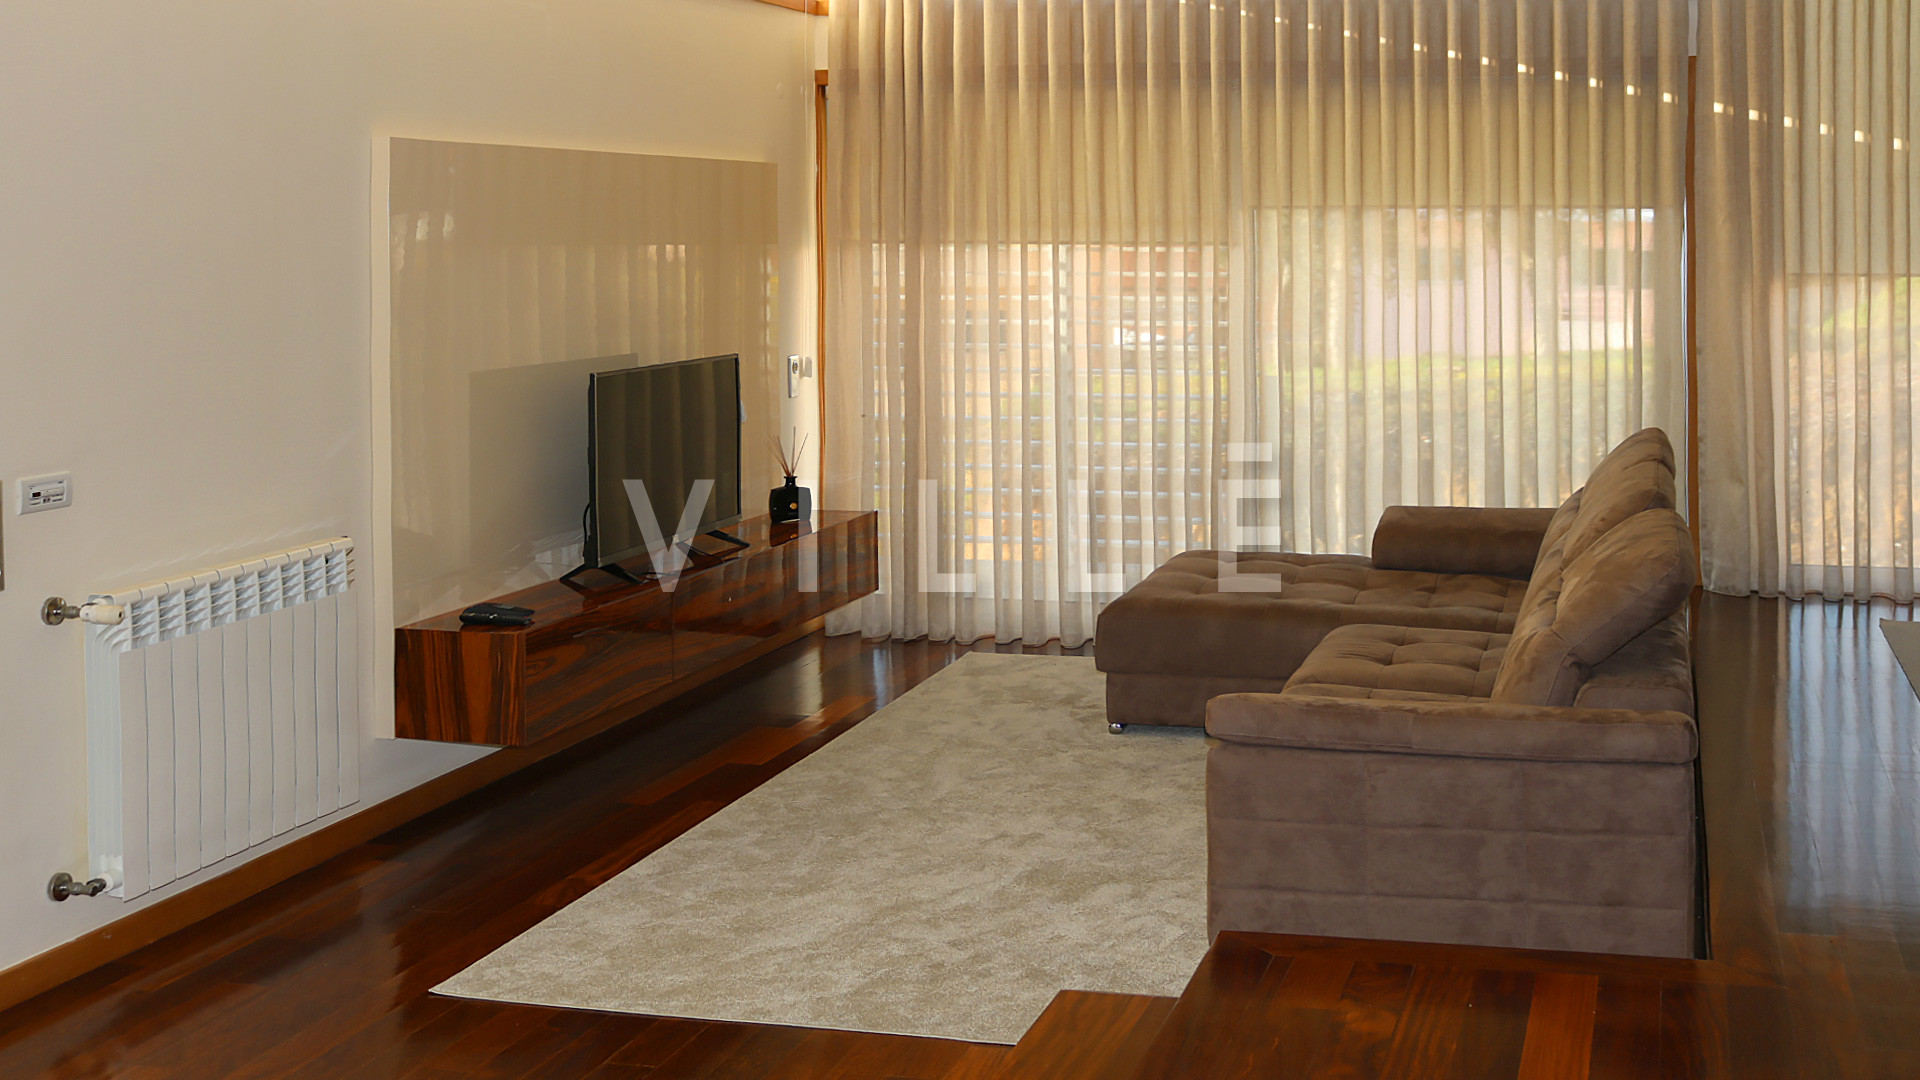 House 3 Bedrooms Modern Architecture - Perosinho